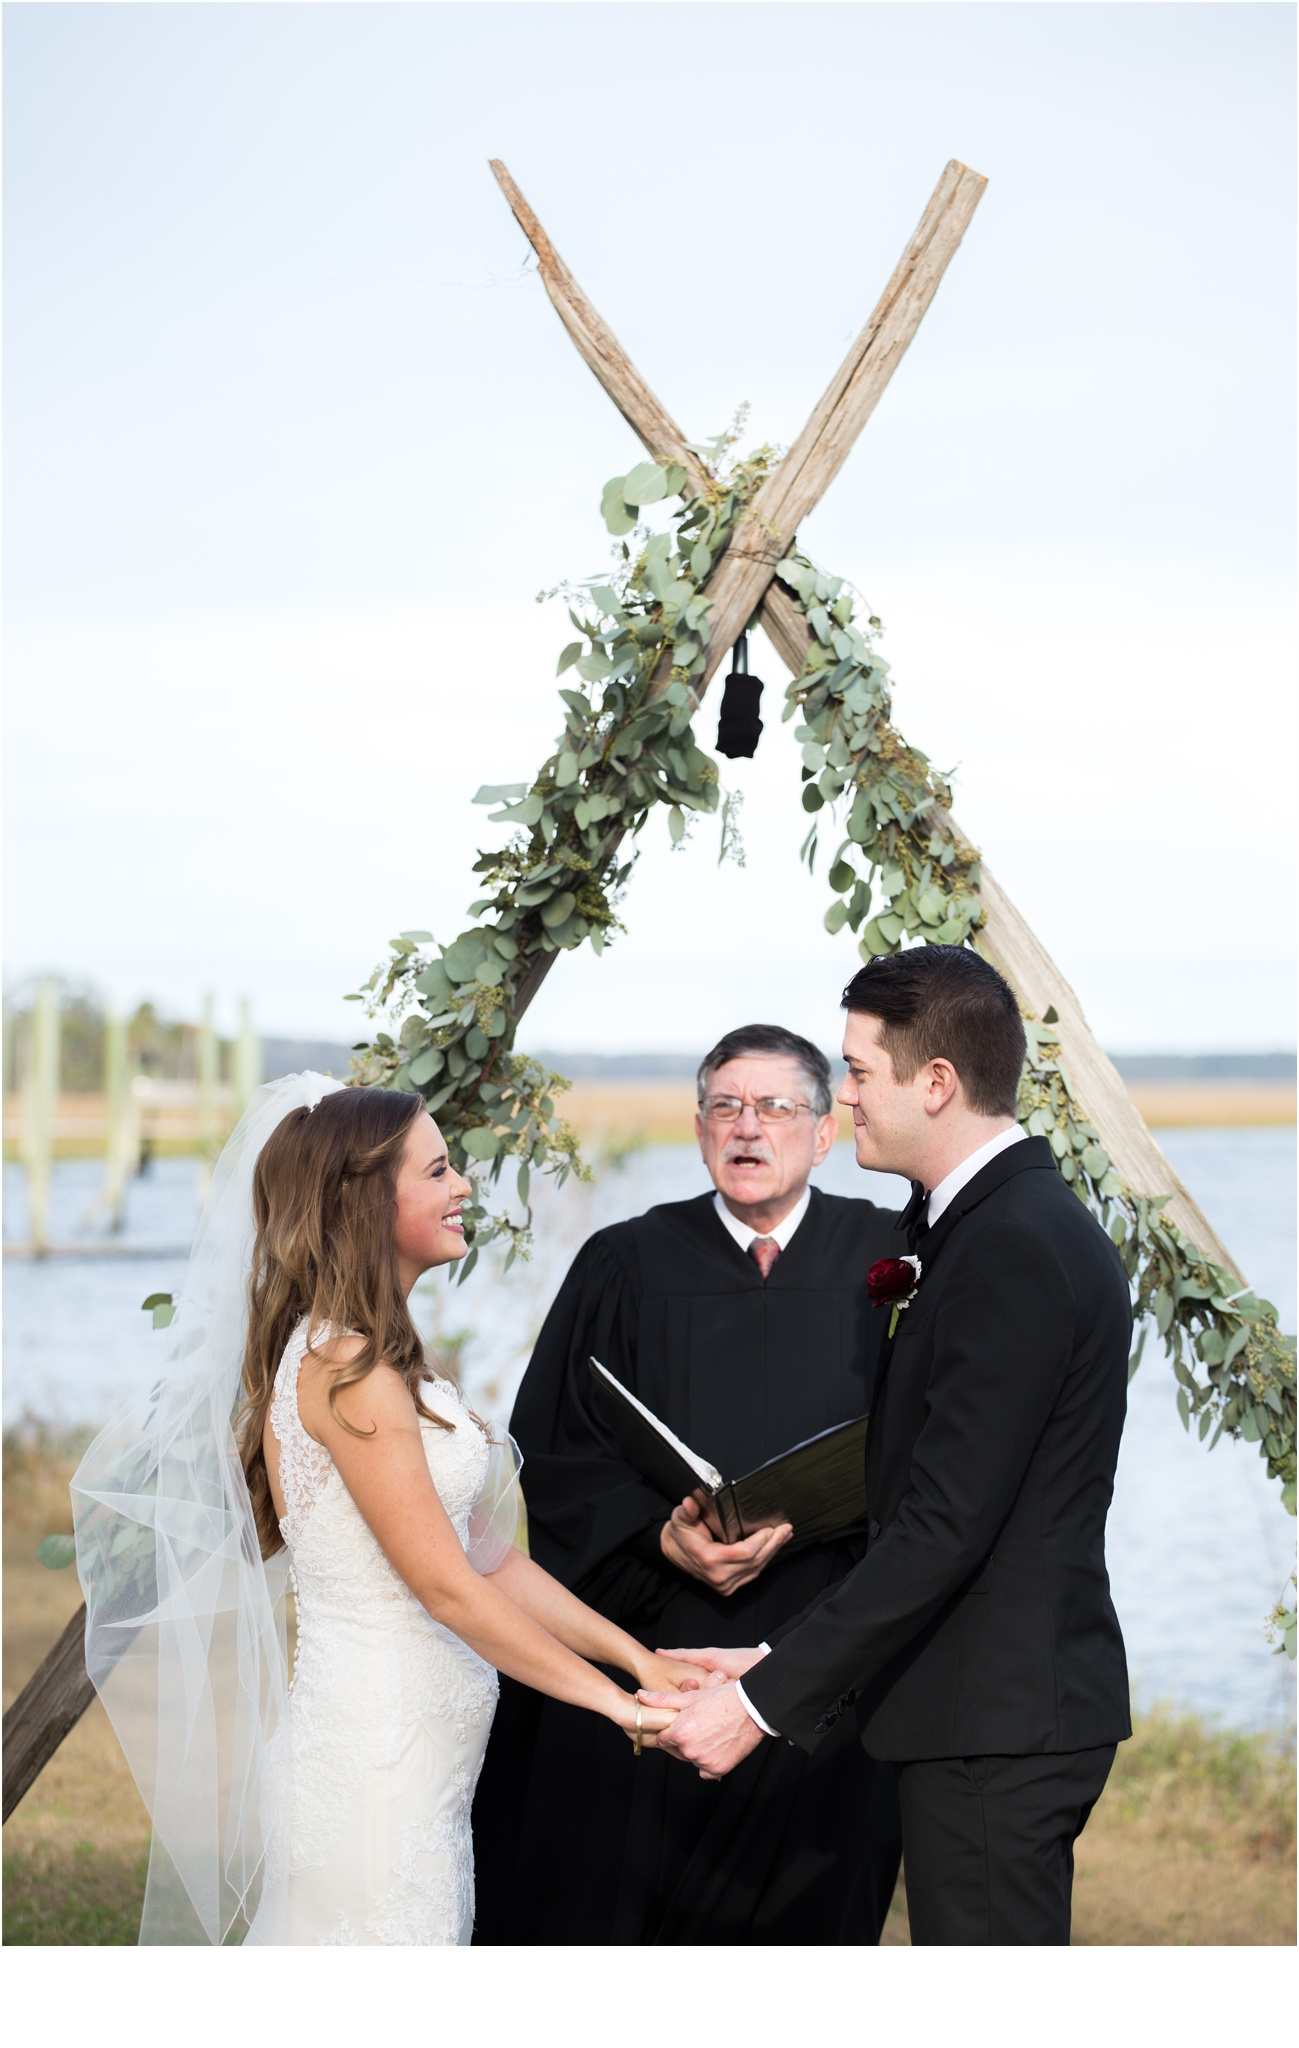 Rainey_Gregg_Photography_St._Simons_Island_Georgia_California_Wedding_Portrait_Photography_0817.jpg